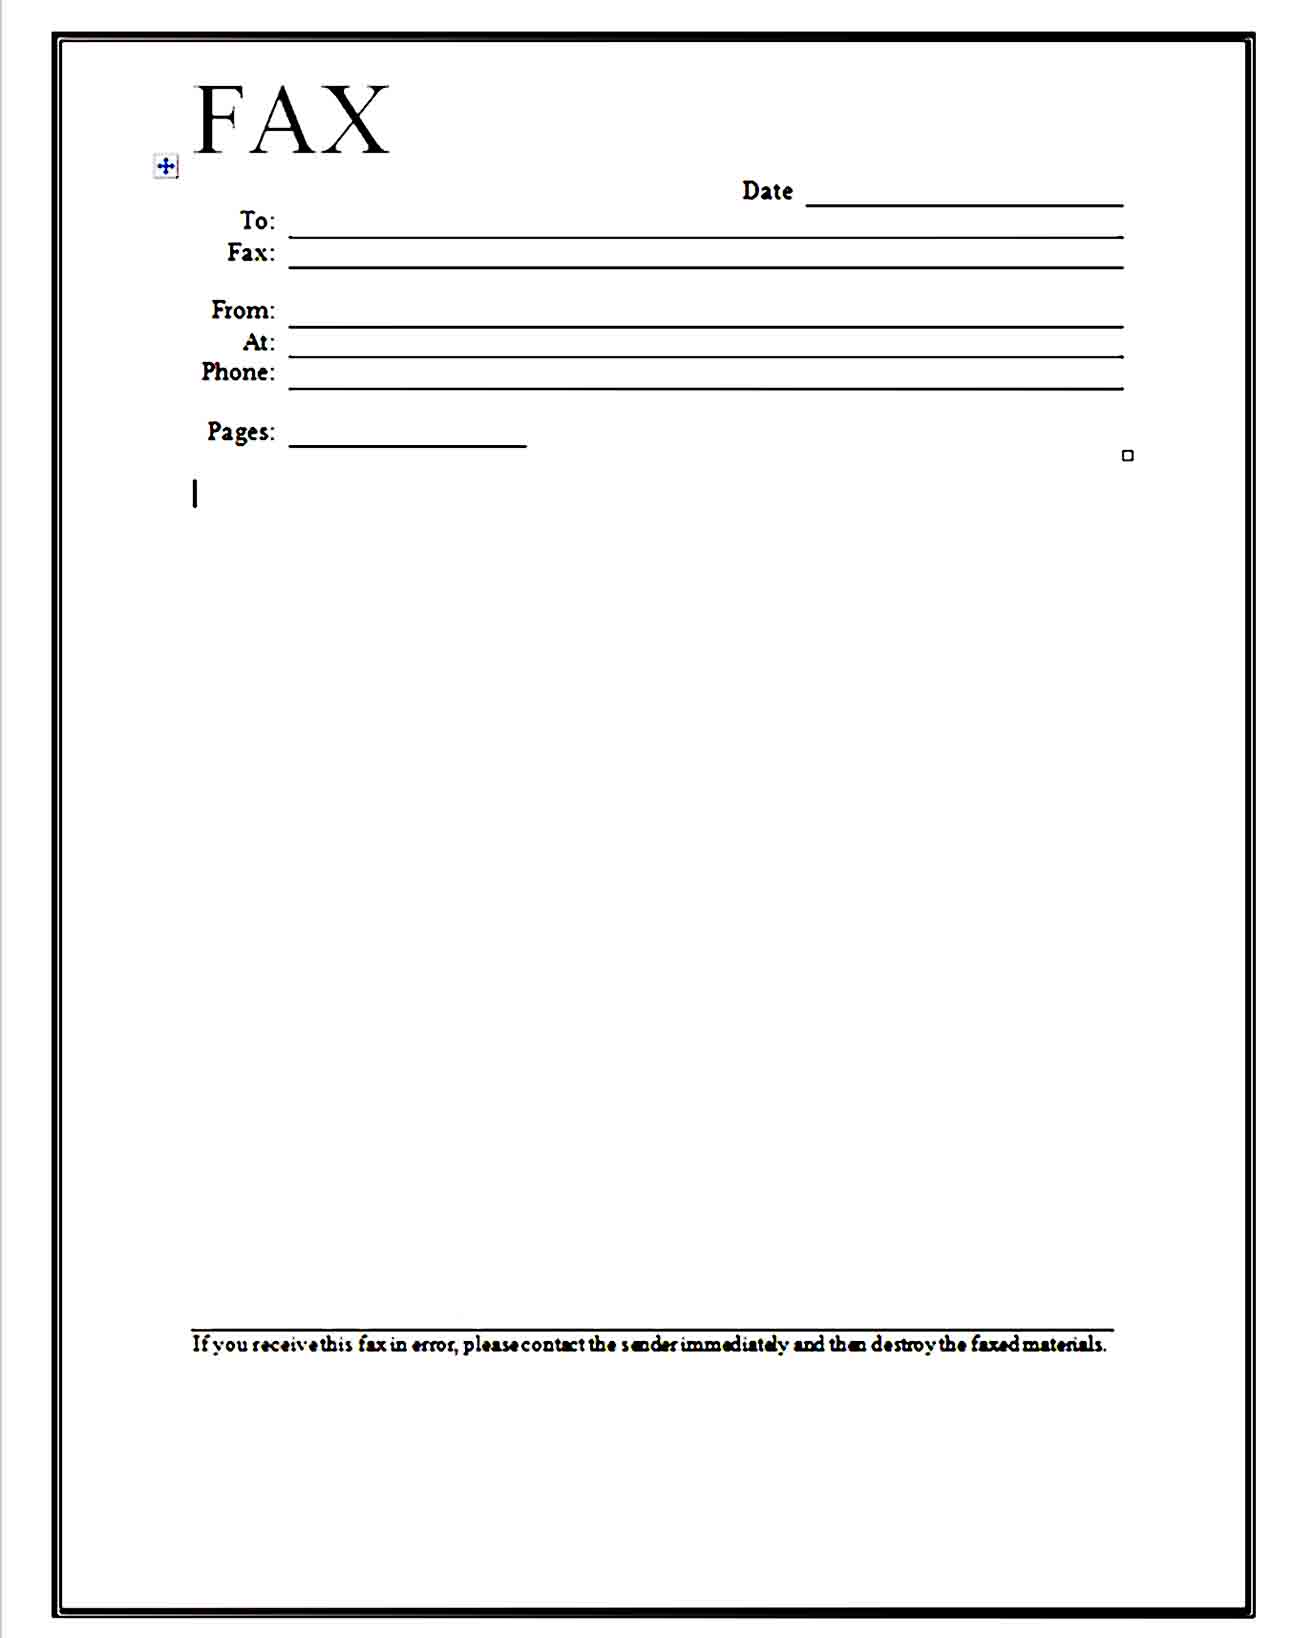 Fax Cover Sheet Template 05